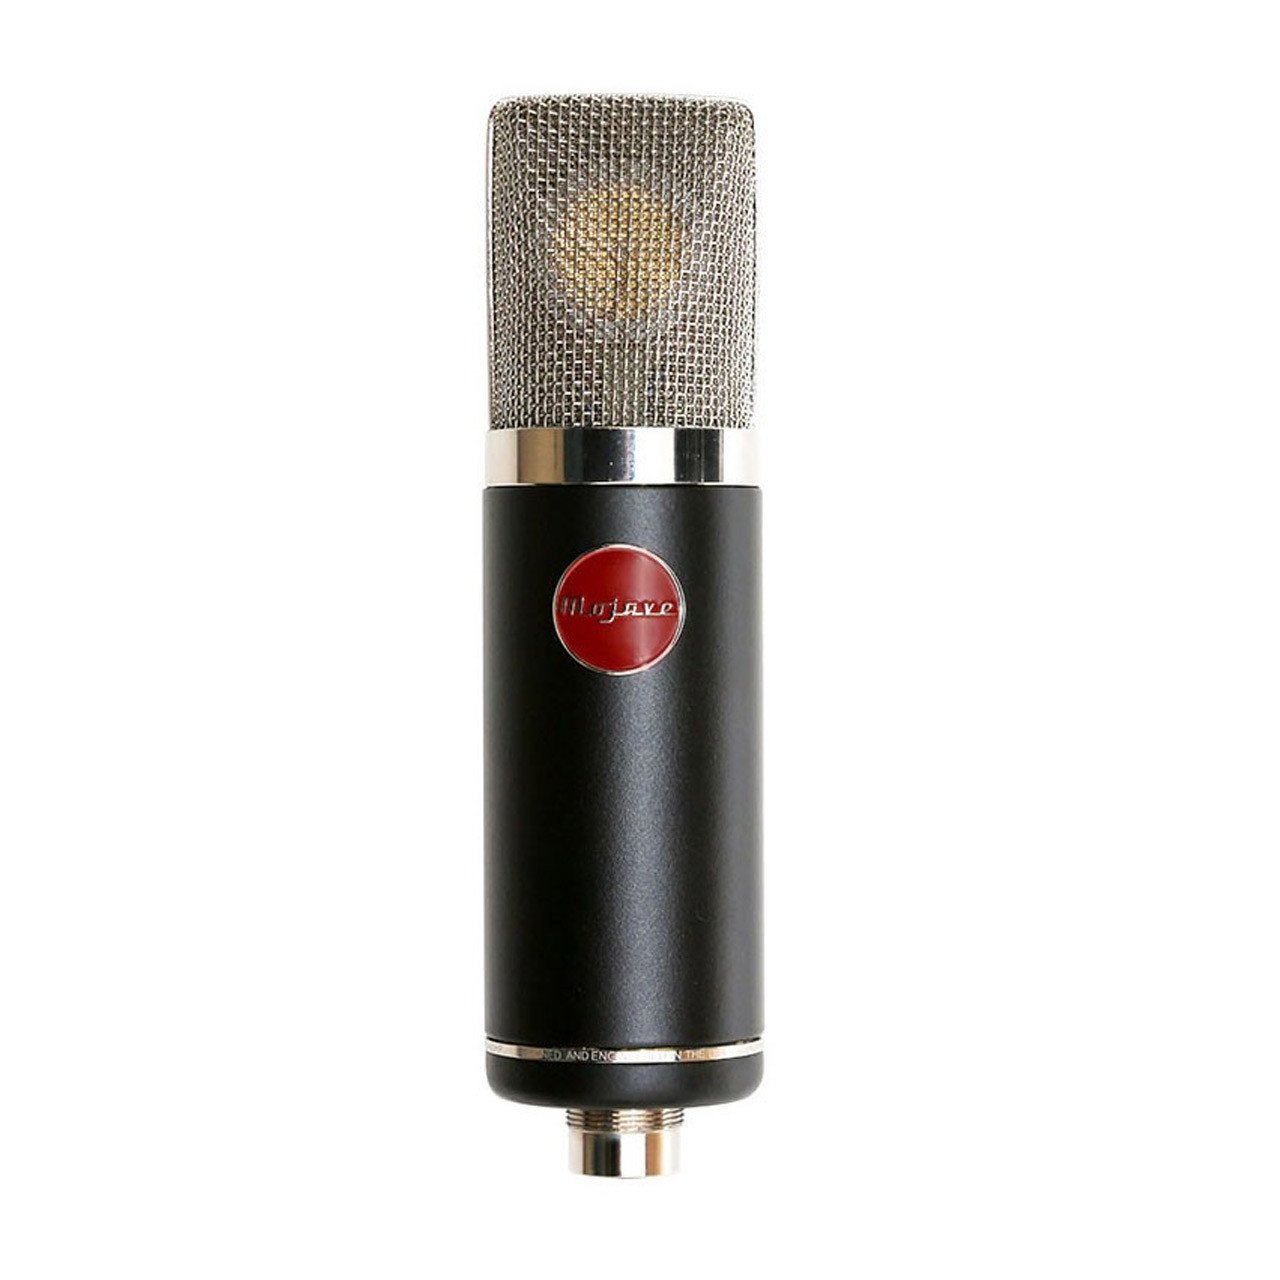 Condenser Microphones - Mojave MA-50 Large-diaphragm Transformerless Condenser Microphone